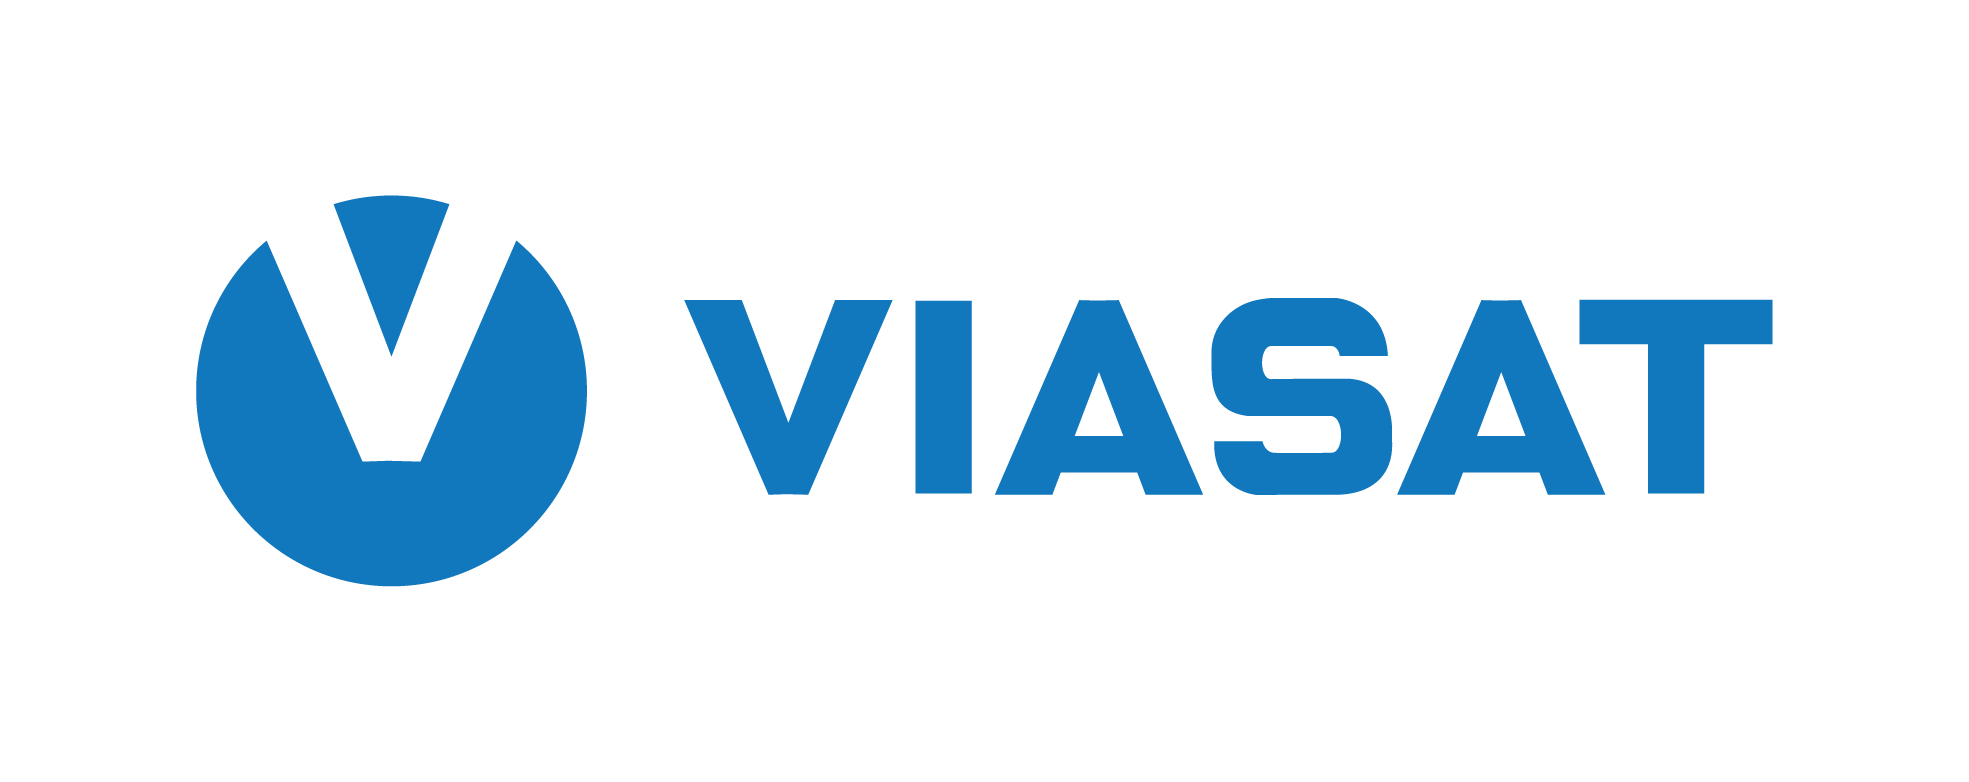 VIASAT_official_png